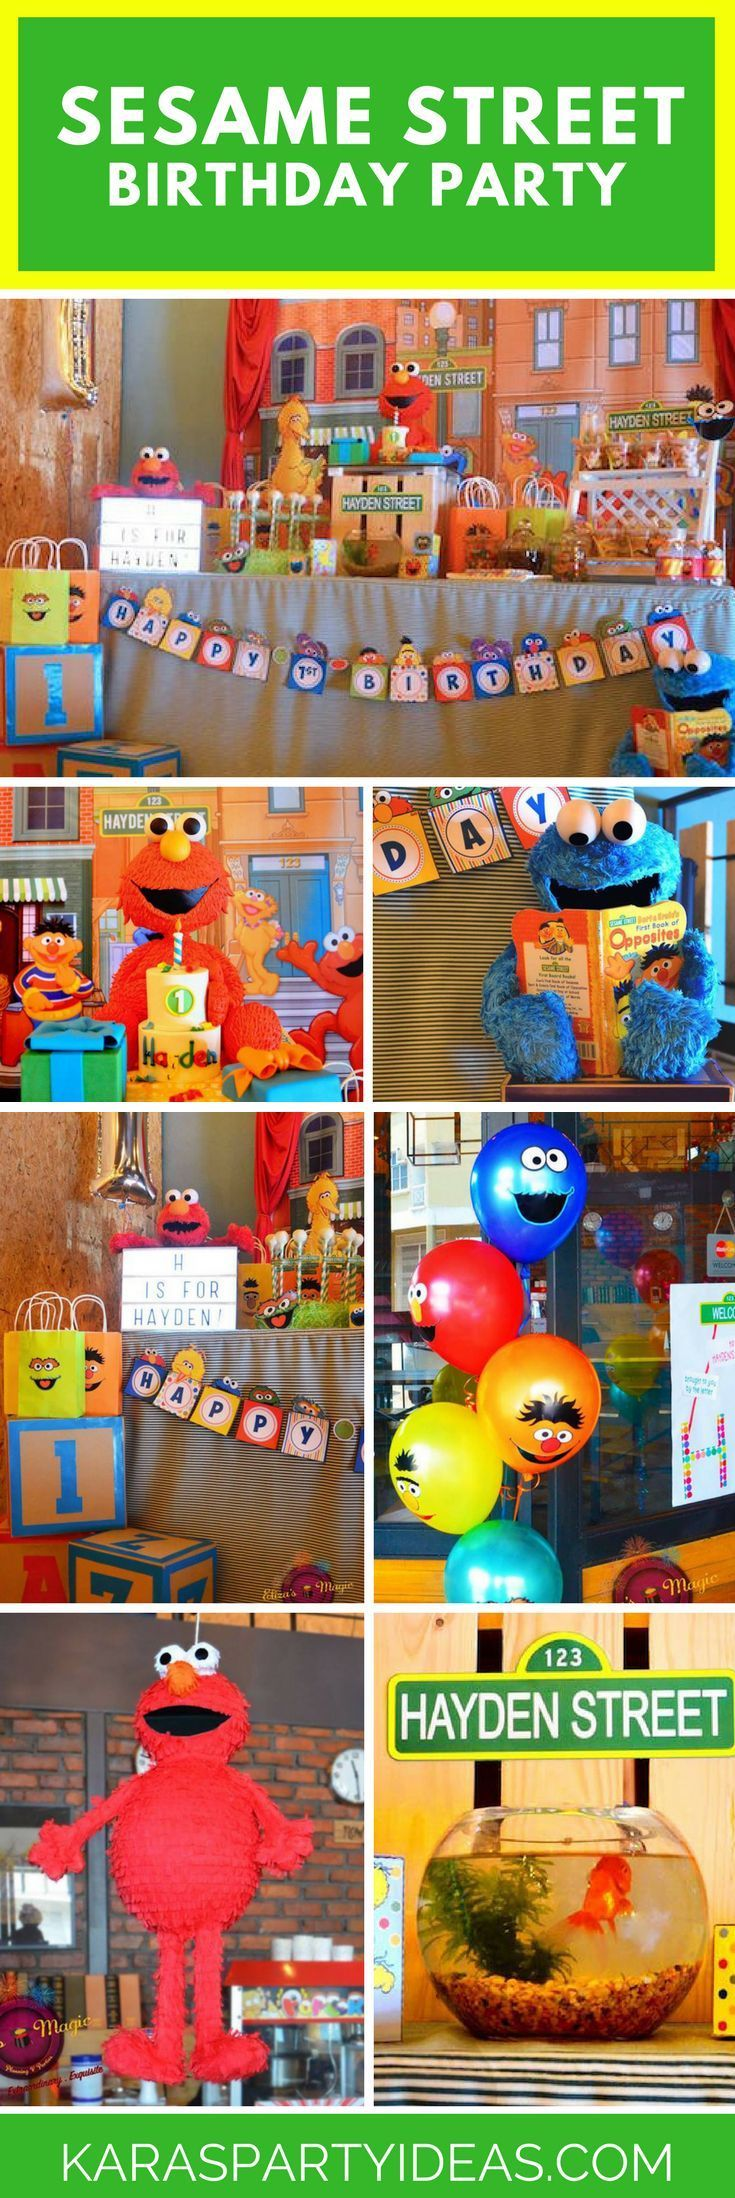 sesame street birthday party via Kara's Party Ideas